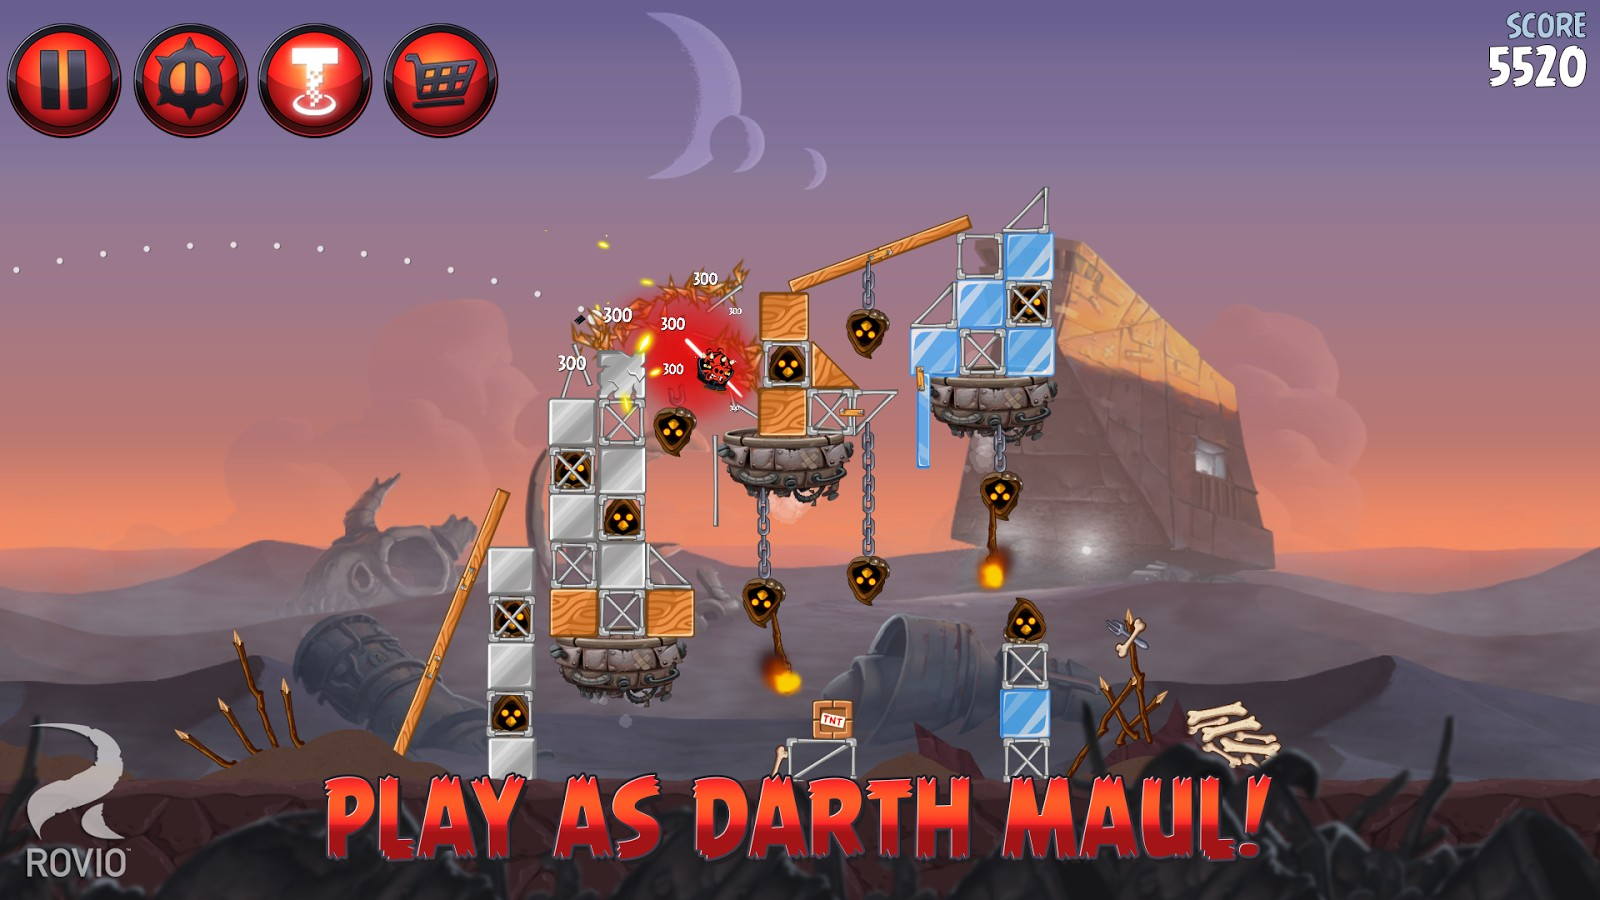 Angry Birds Star Wars for Android - GameFAQs